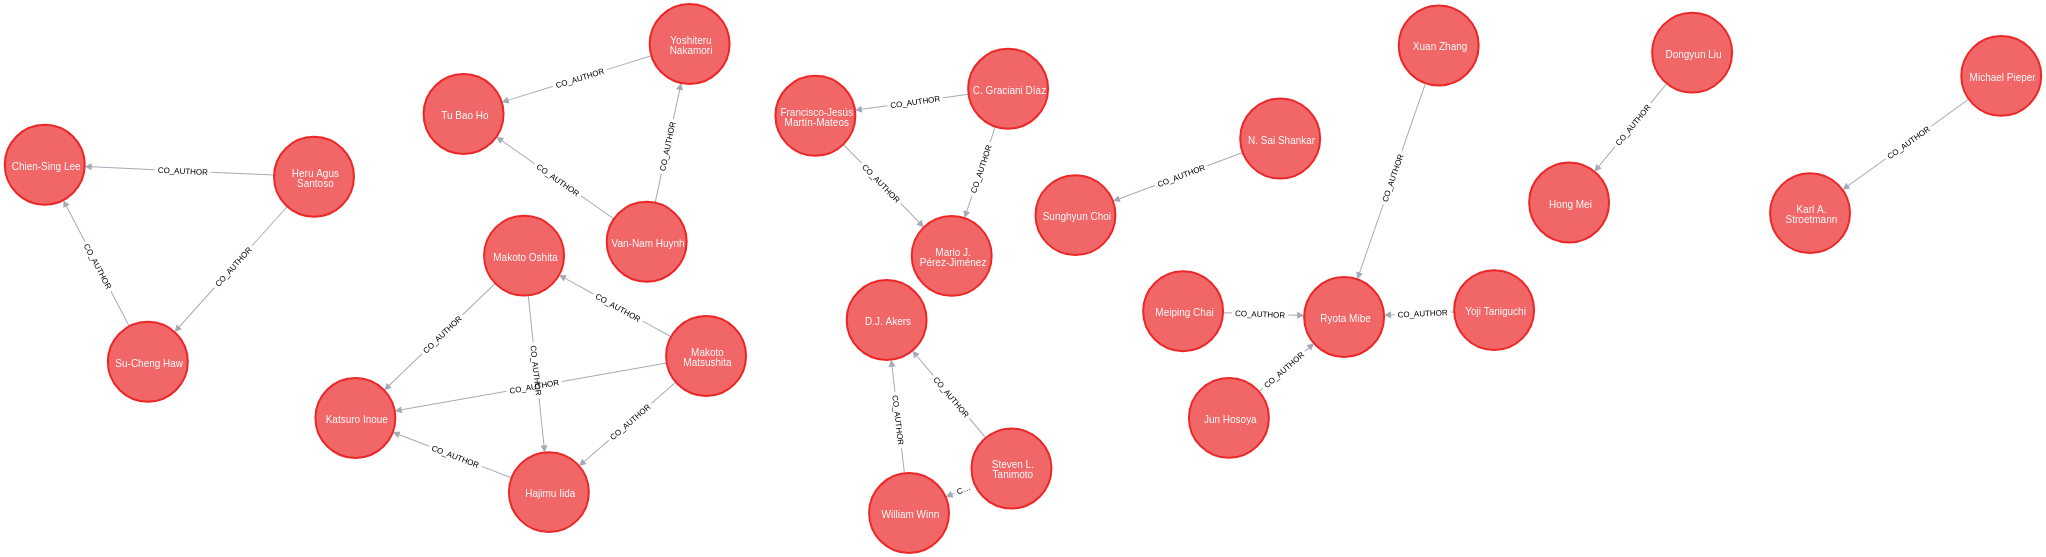 Link Prediction with Neo4j Part 2: Predicting co-authors